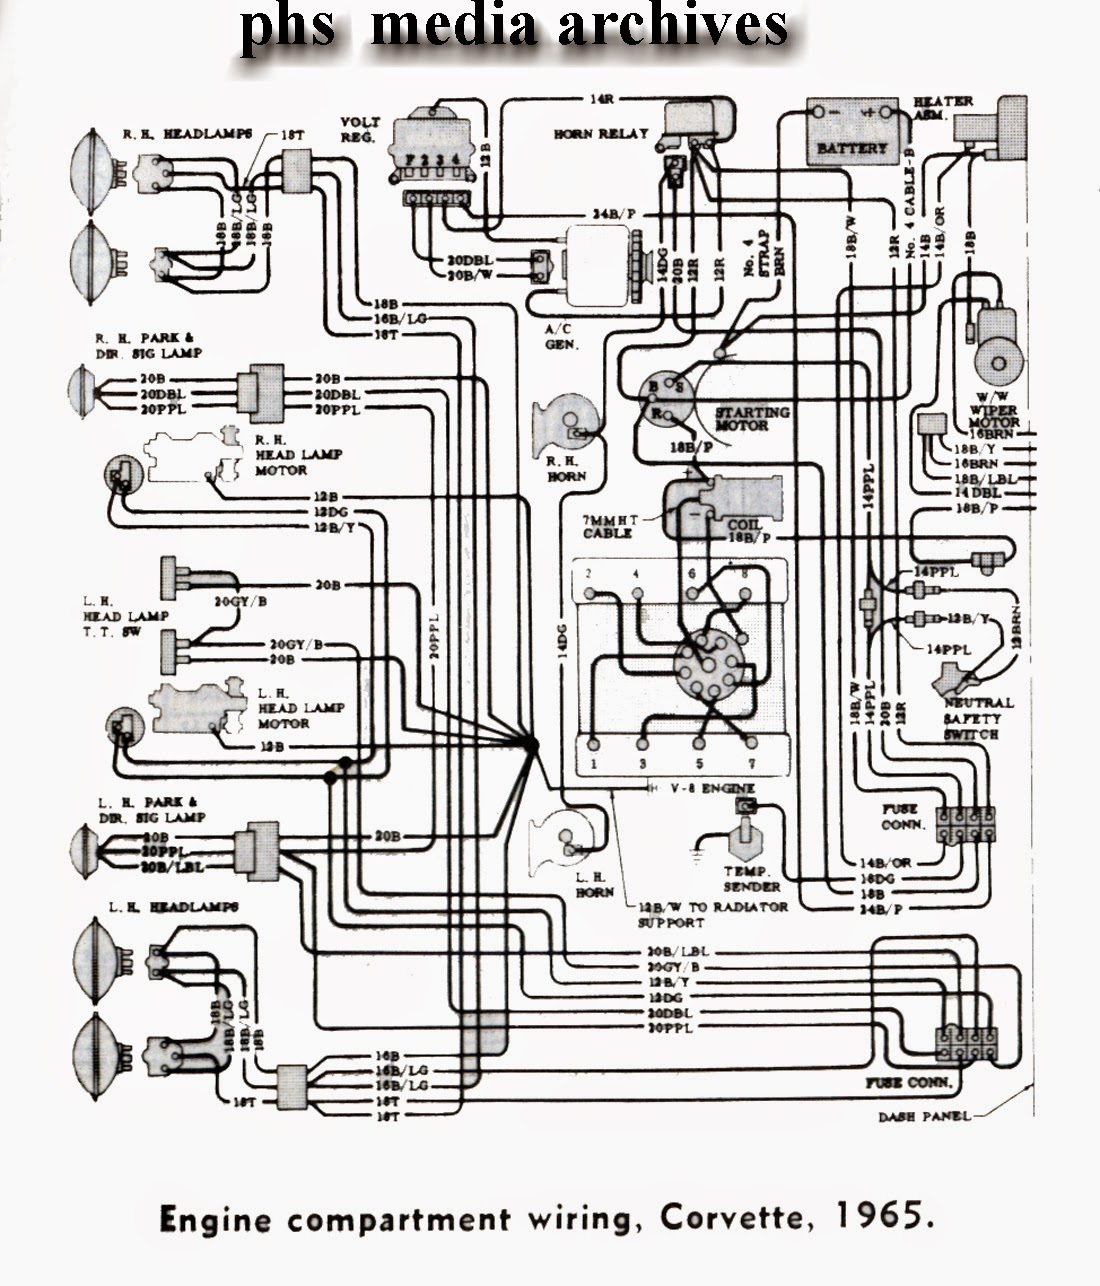 vette%2Bengine corvette wiring diagram corvette parts diagram \u2022 wiring diagrams 1980 camaro dash wiring diagram at cita.asia